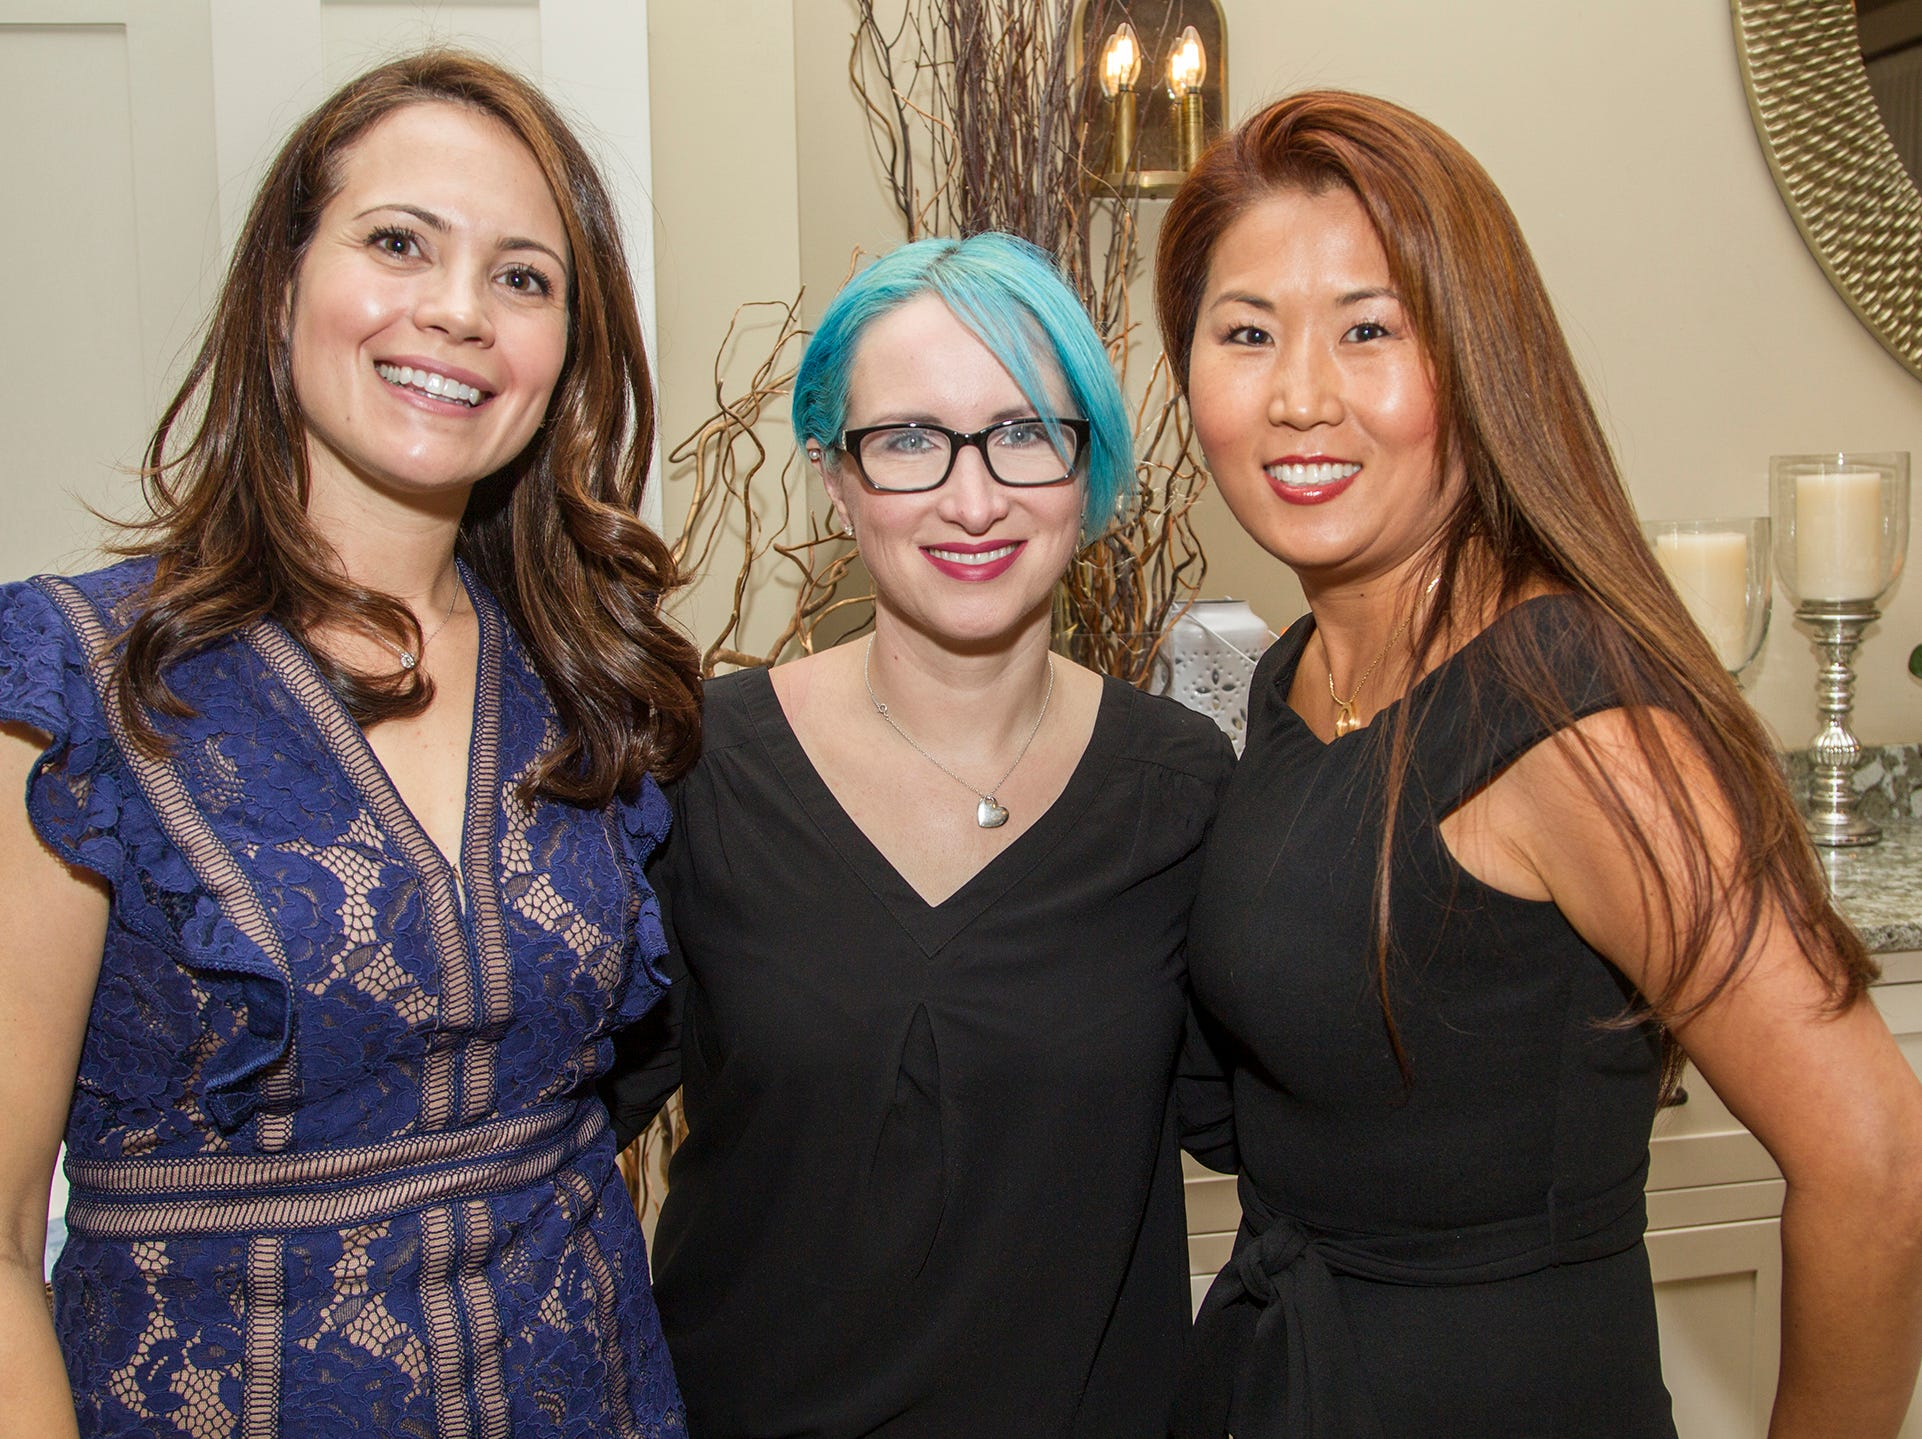 Concetta Callahan, Christine Norflus, Krystal Choi. Spring Lake Toys Foundation held its 3rd annual fundraising gala luncheon at Indian Trail Club in Franklin Lakes. The luncheon fundraiser raises funds for children with illnesses. 10/18/2018